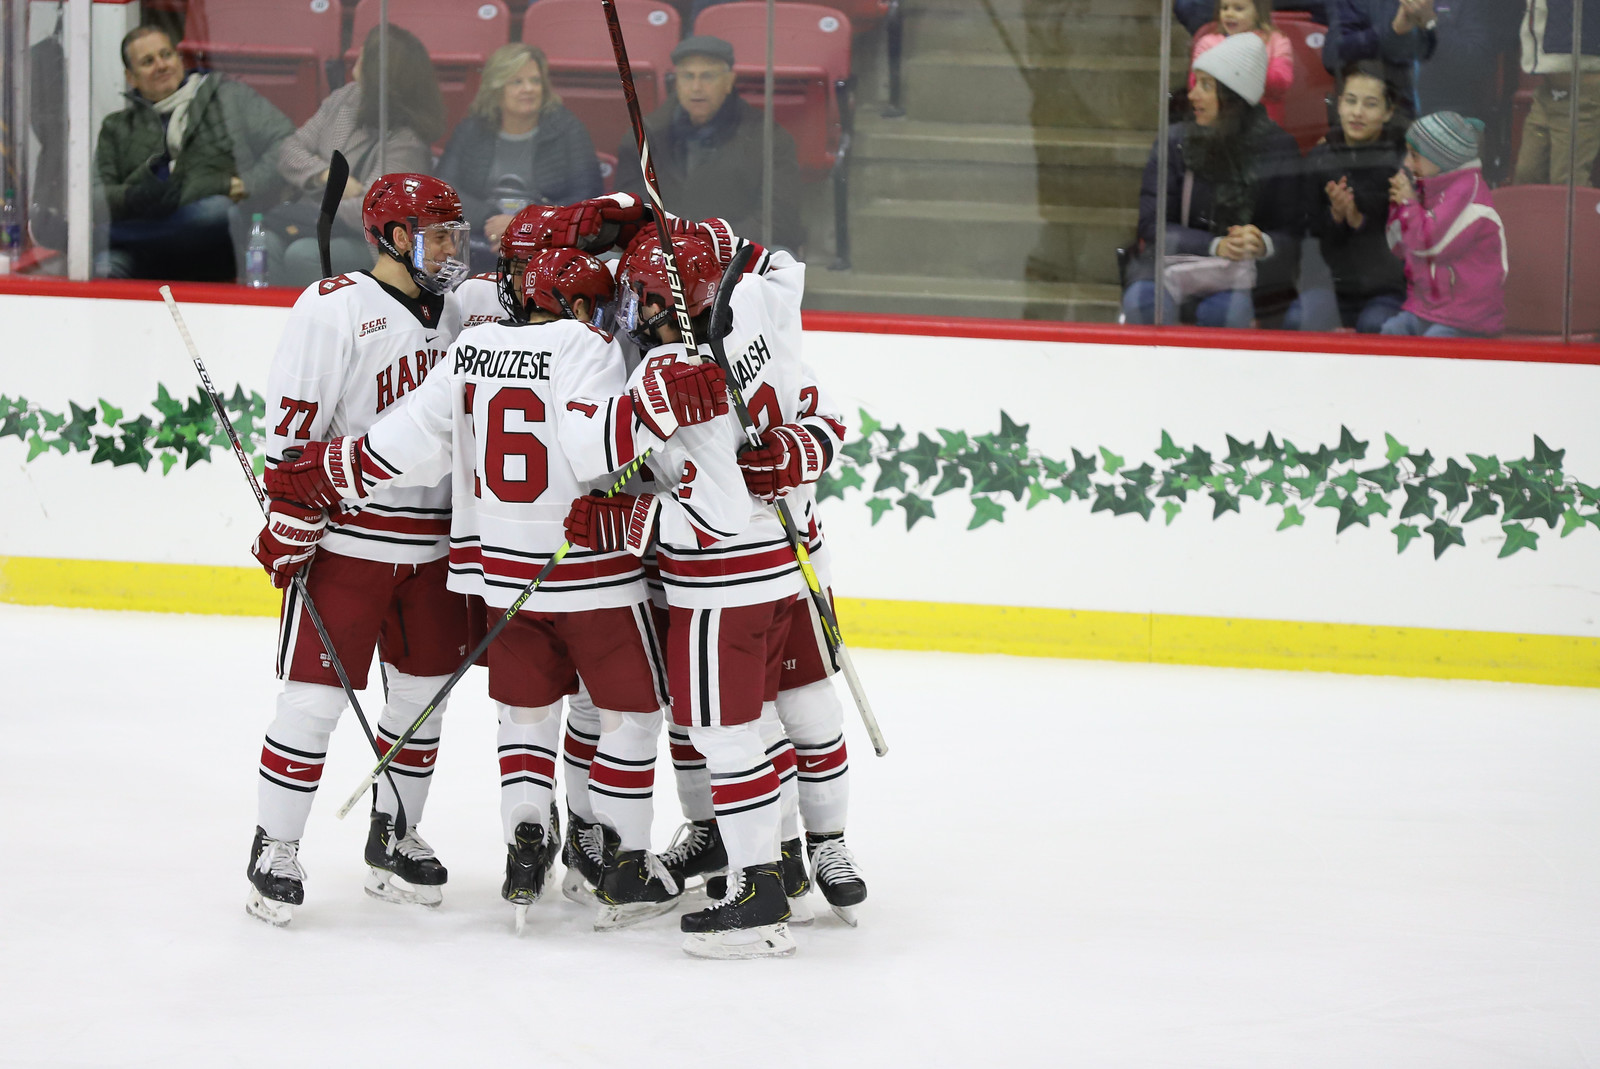 The Crimson is off to its best start to a season since 1993-1994.